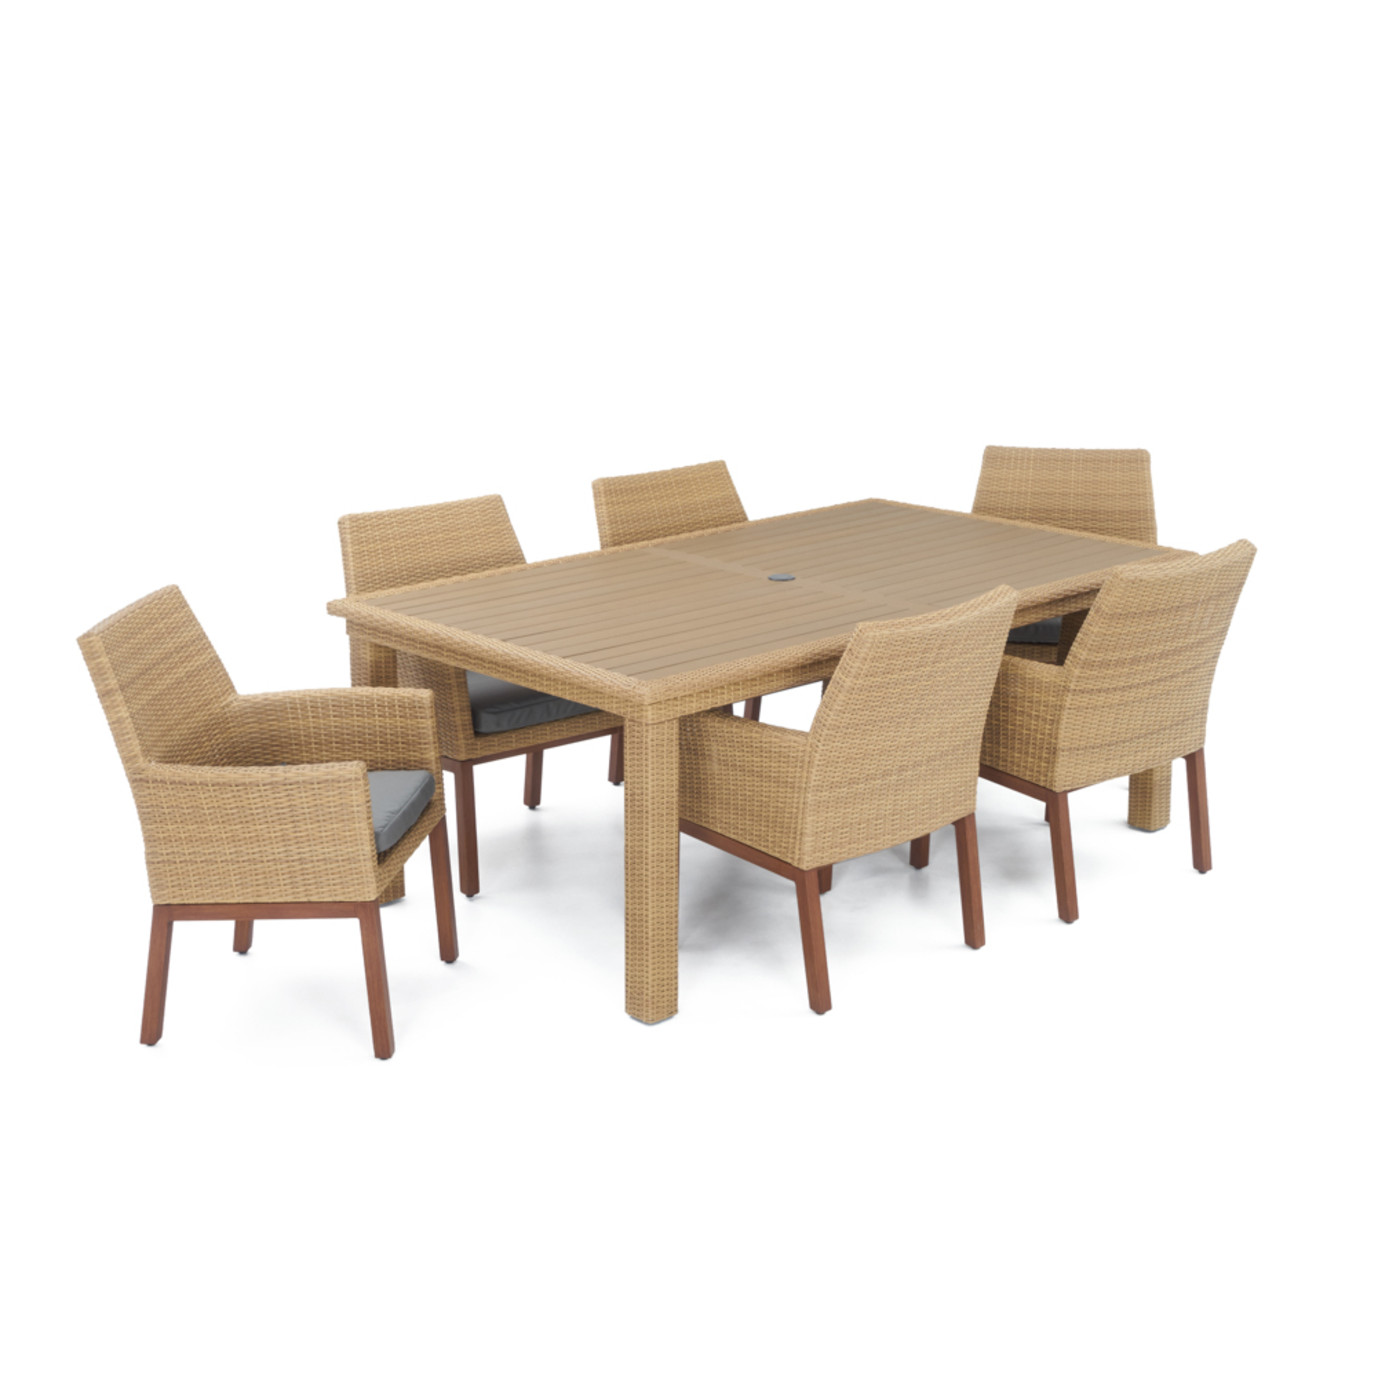 Mili™ 7pc Dining Set - Charcoal Grey